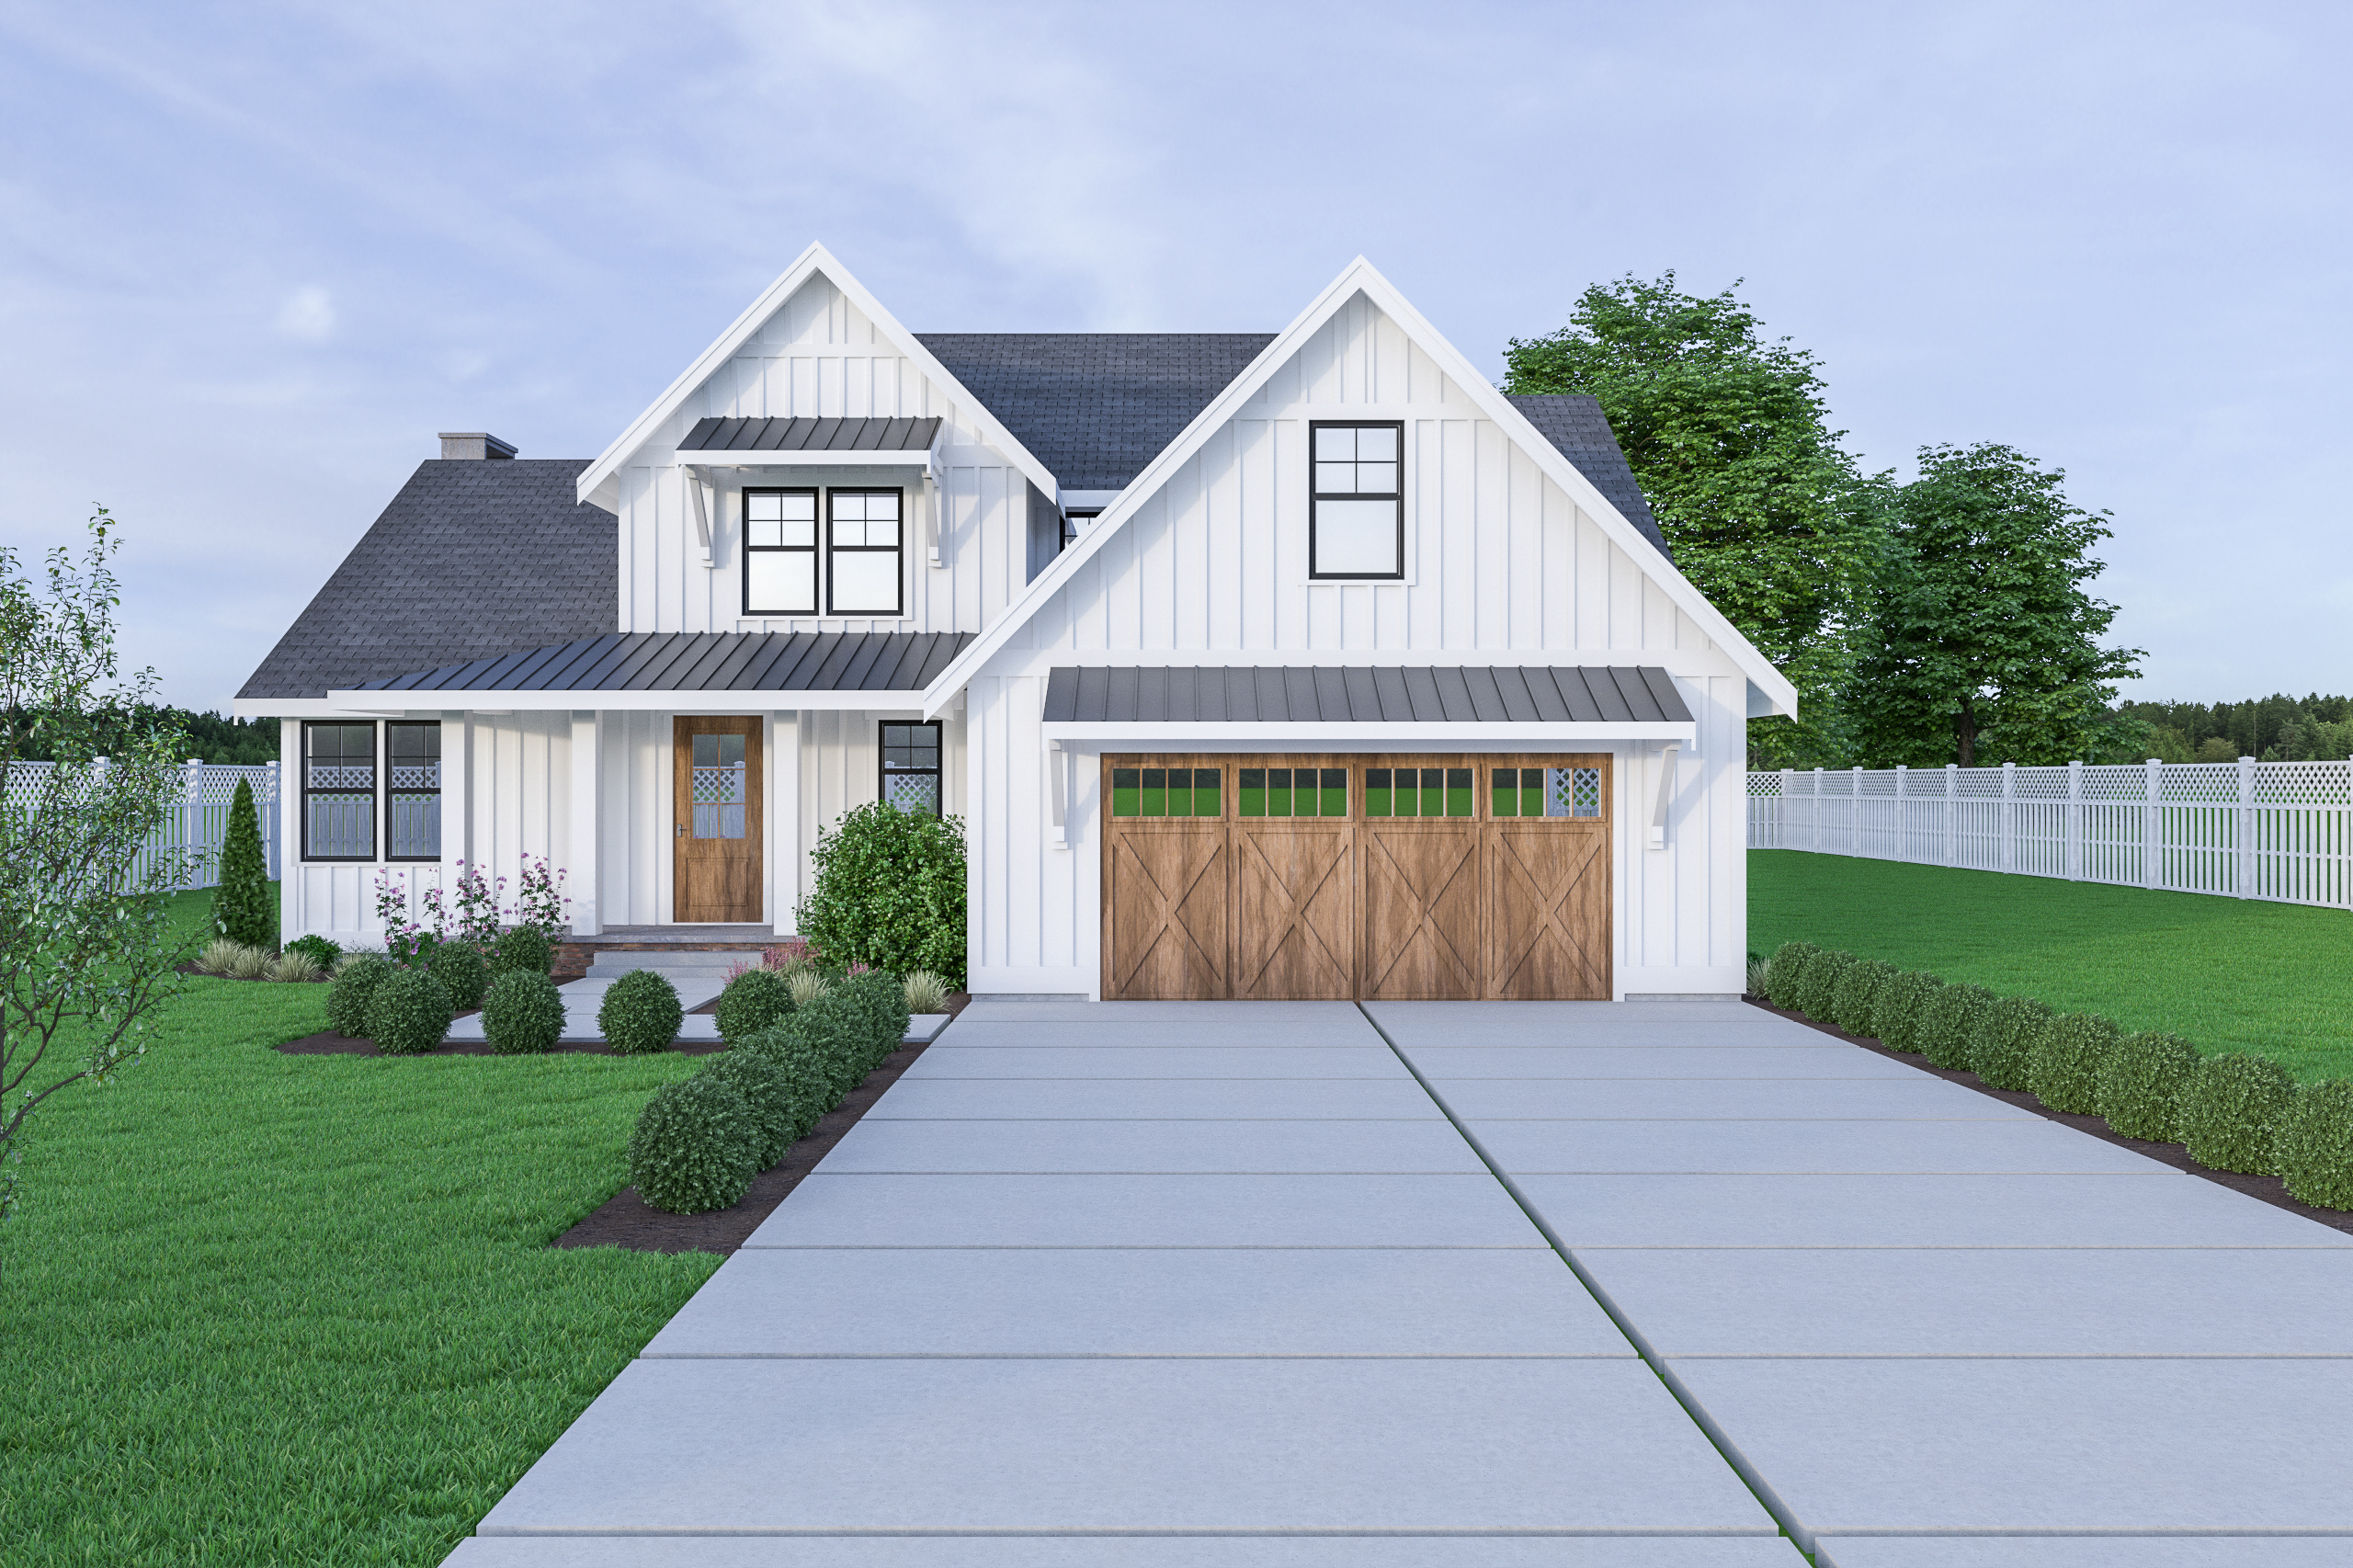 Contemporary Farmhouse 810 17-164